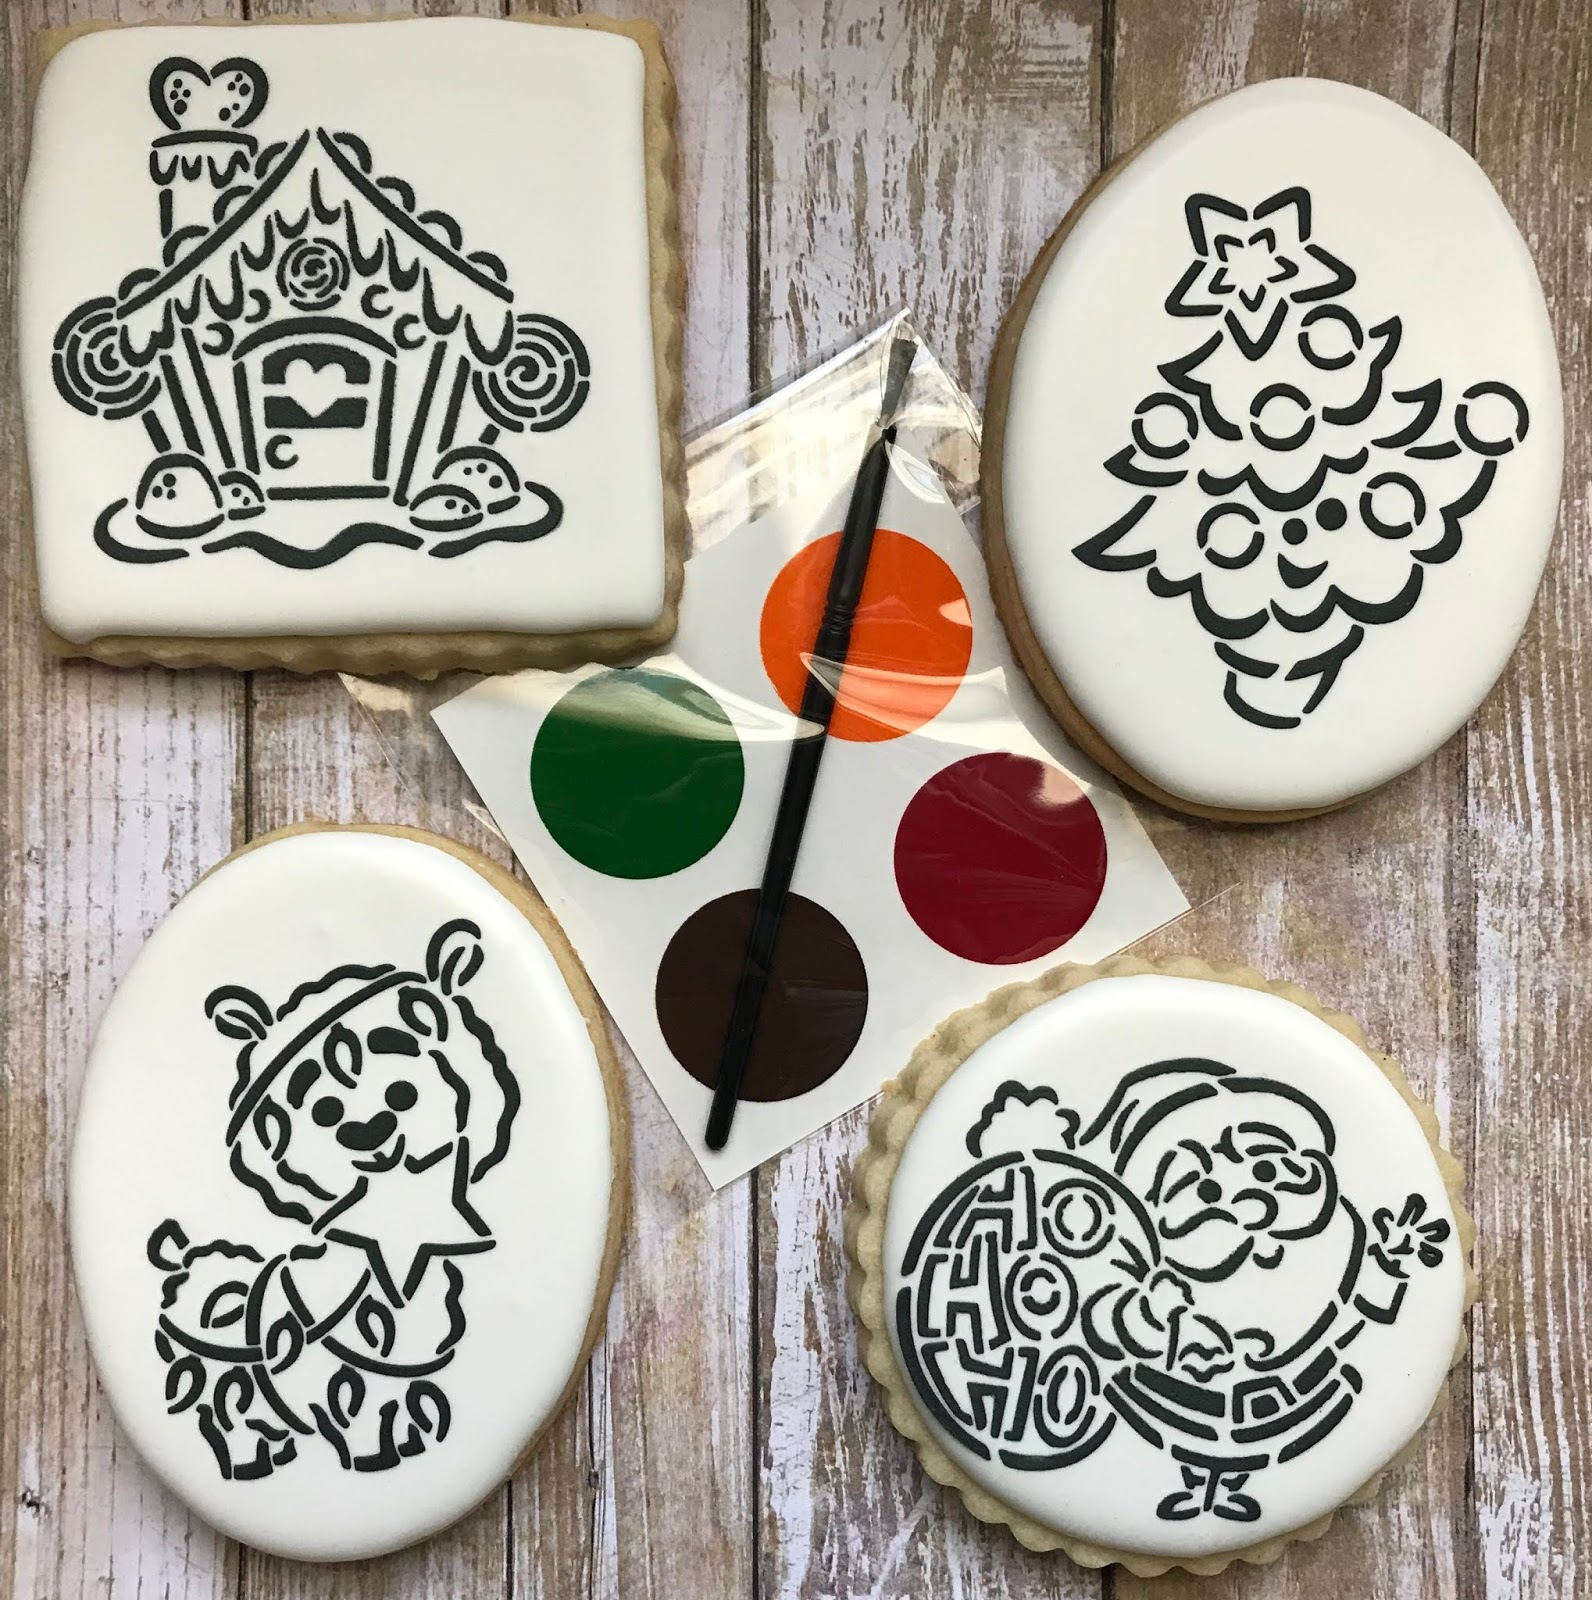 Christmas Cookies 2018 Paint Your Own Pyo Gift Kits The Aggie